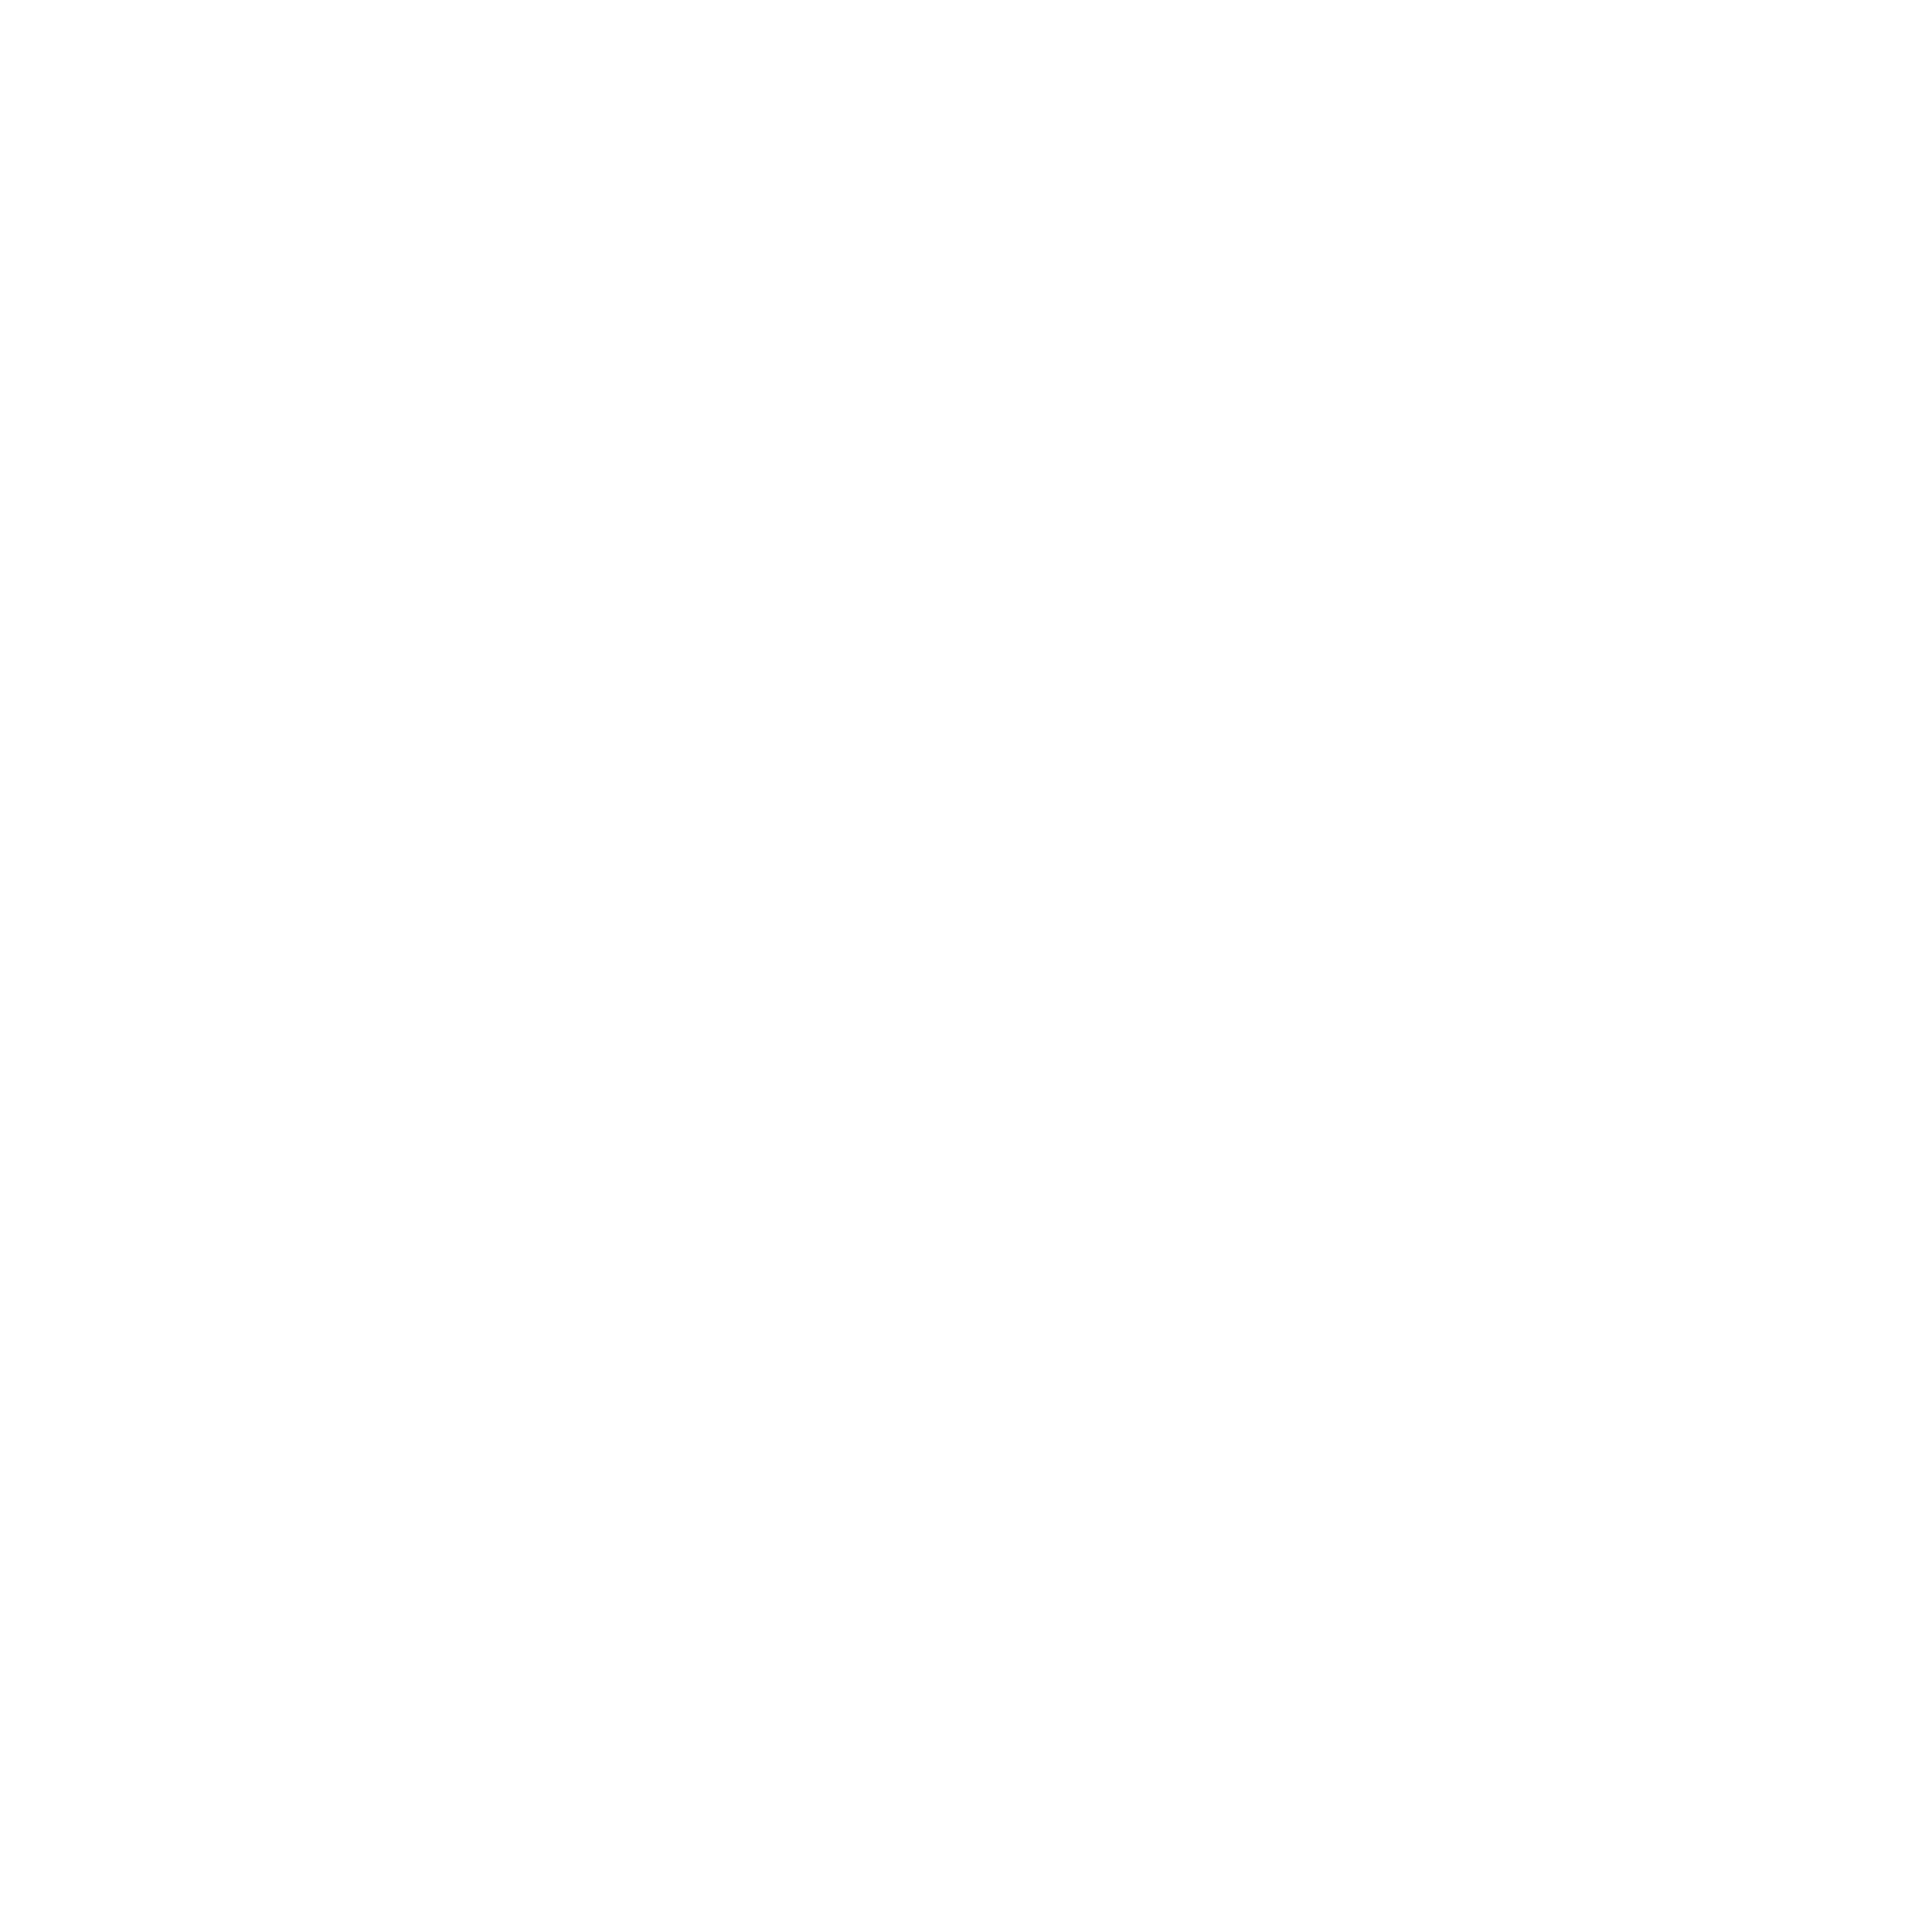 Exclusive Bar Catering